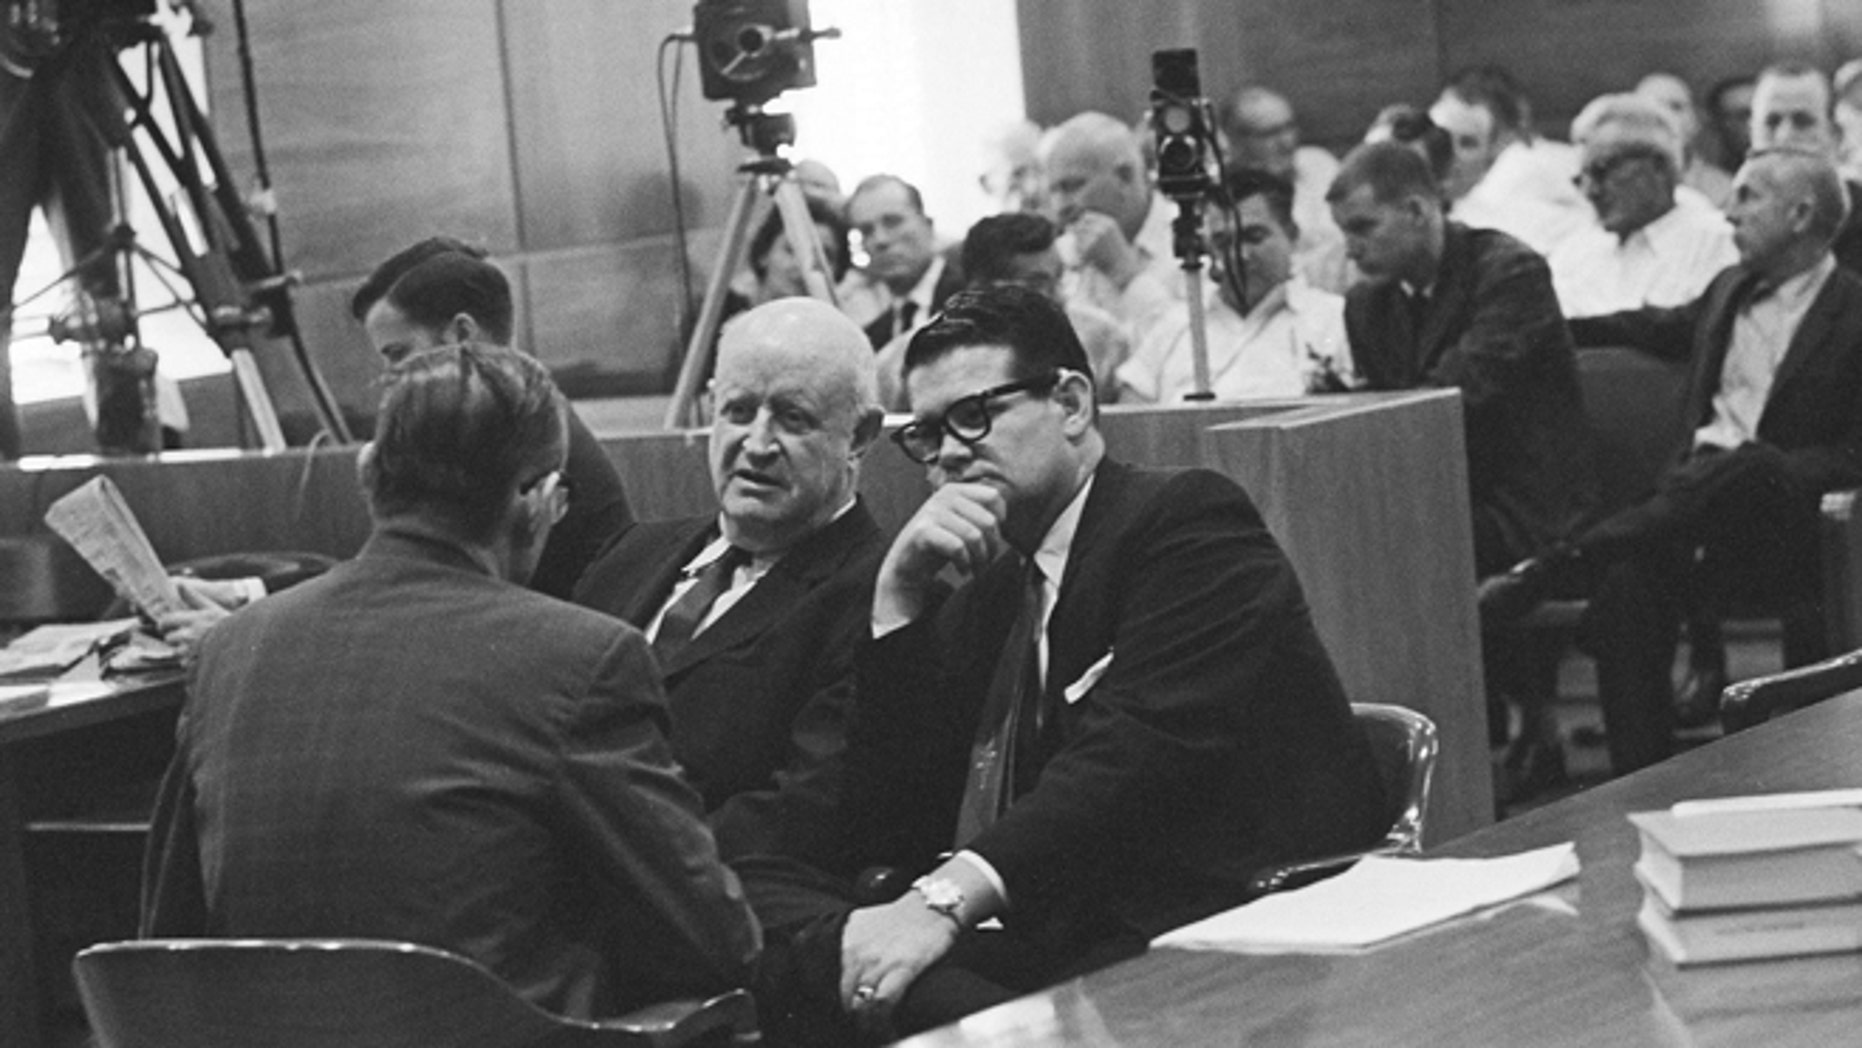 Sept. 25, 1962: In this file photo, Billie Sol Estes, right, confers with his attorneys, John Cofer, center, and John Dennison during recess in trial in Tyler, Texas